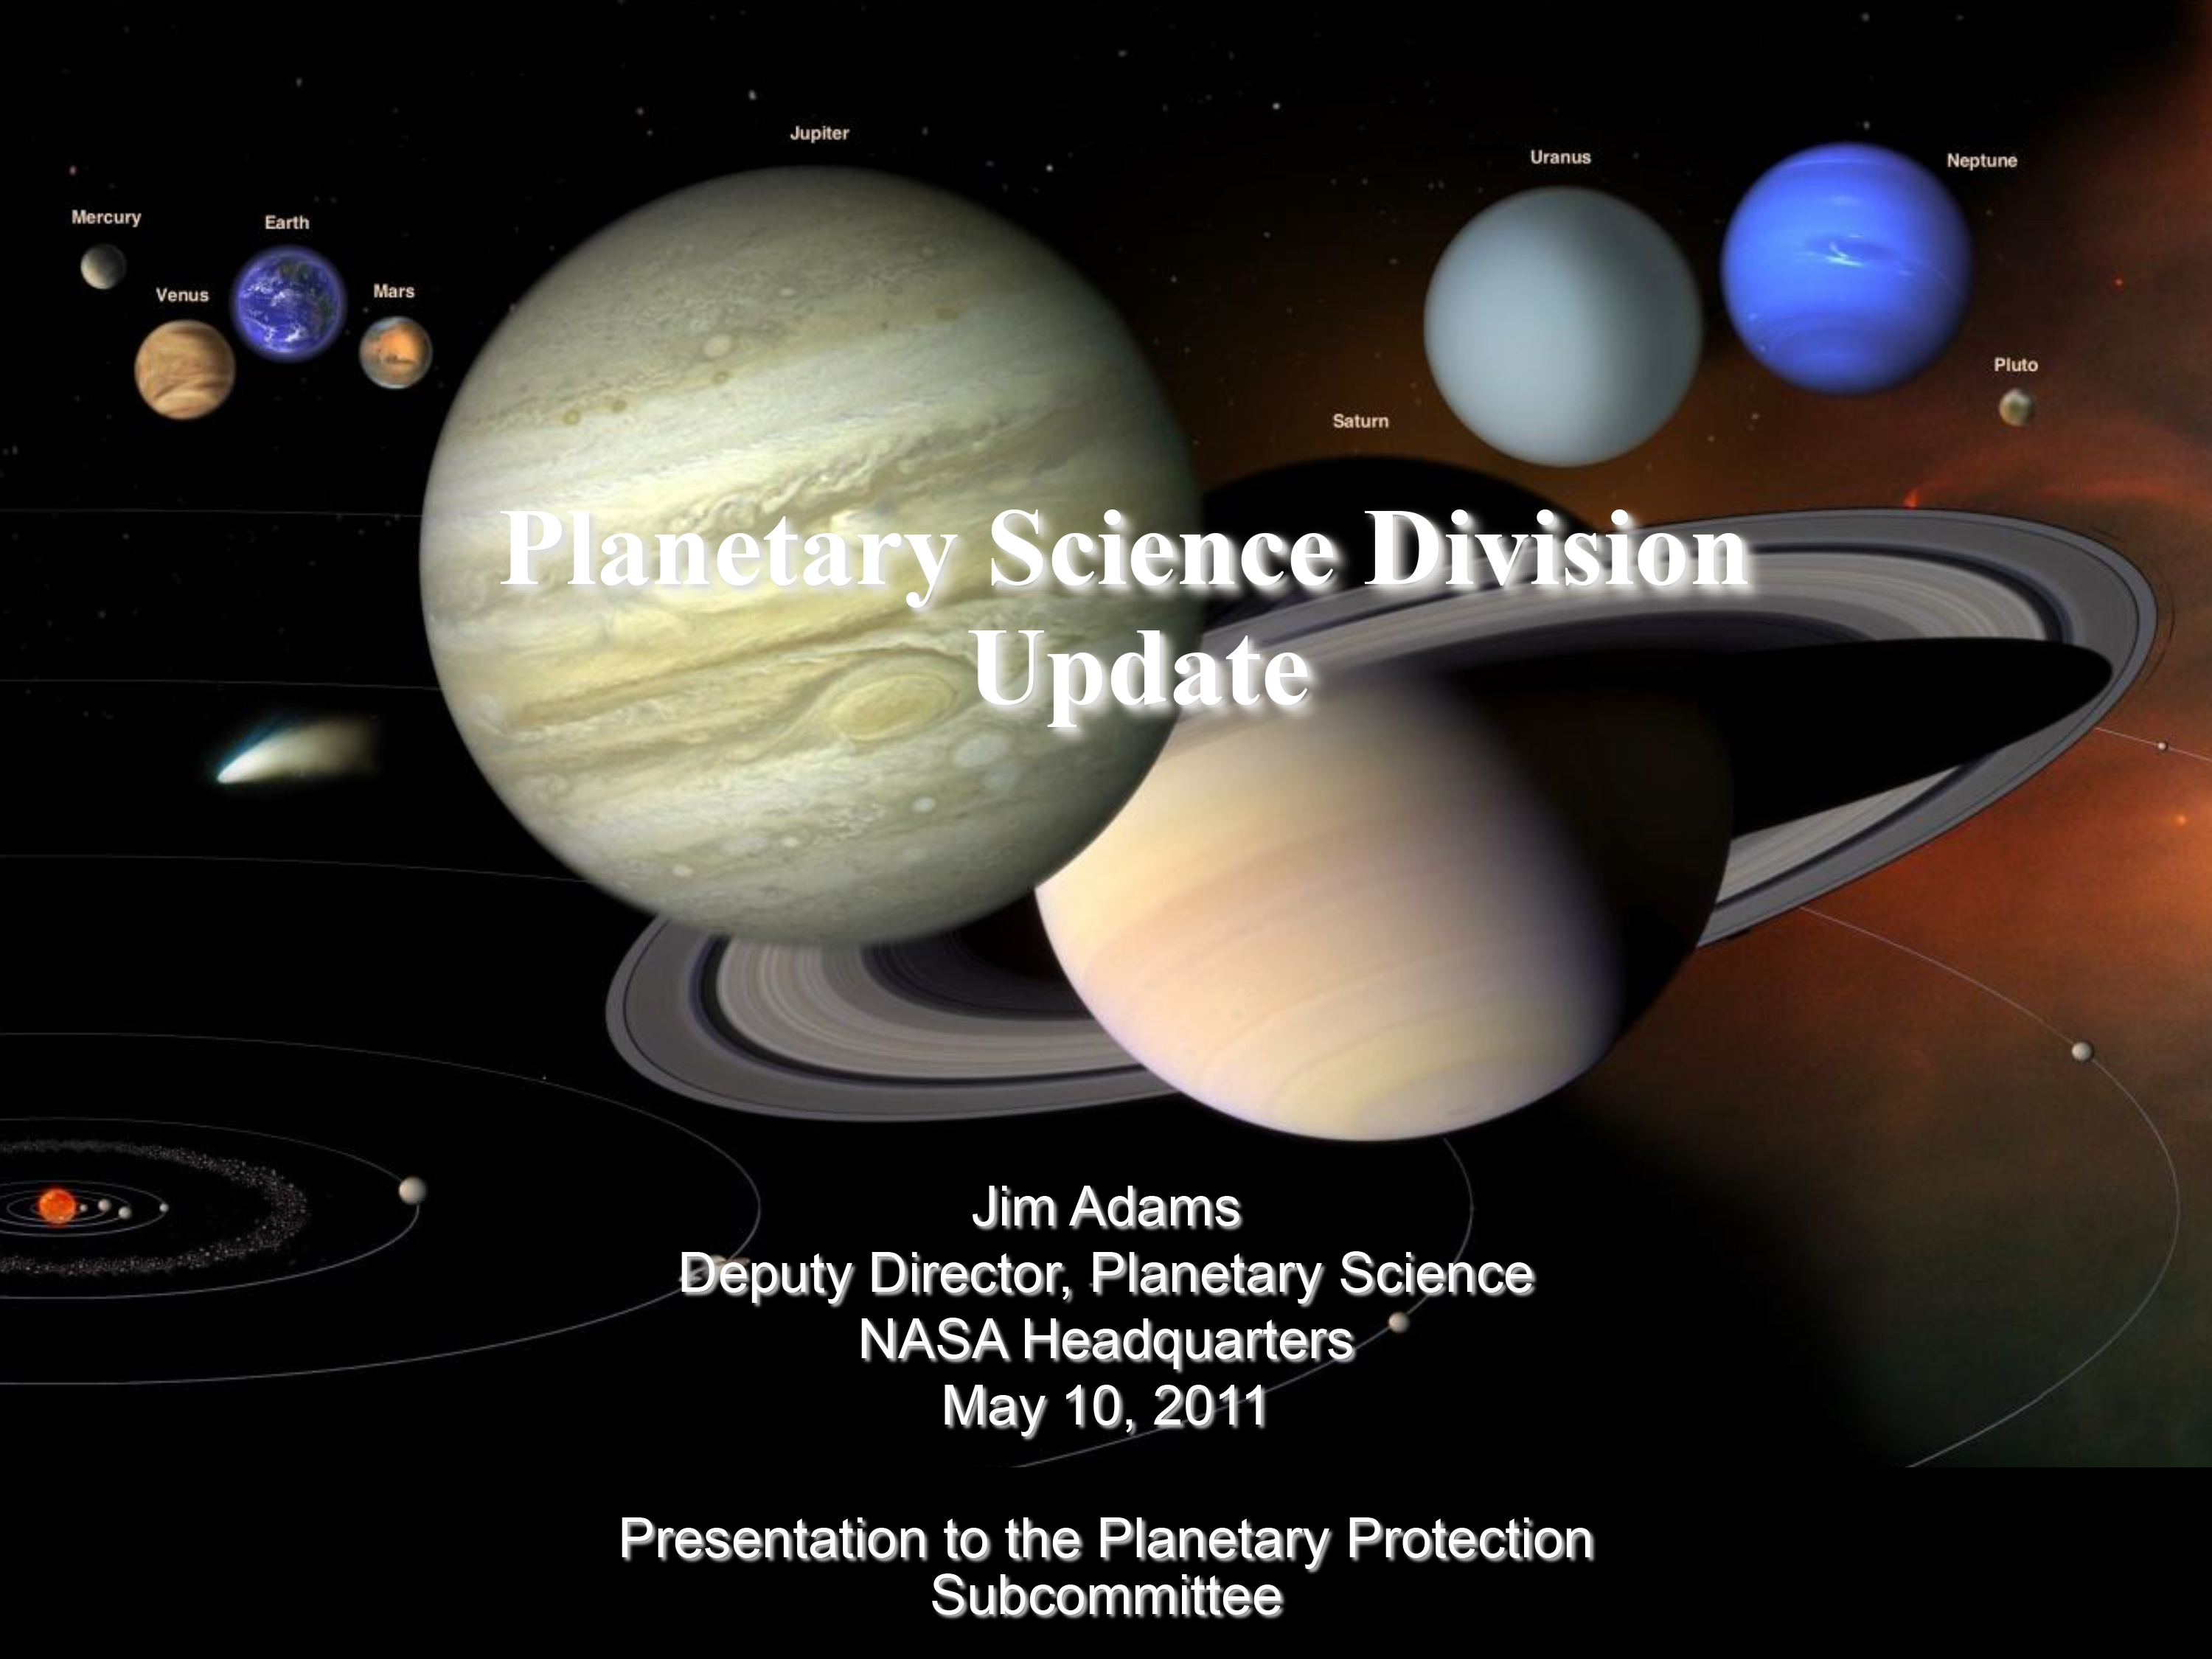 Presentation by Planetary Science Division Deputy Director Jim Adams to Planetary Protection Subcommittee